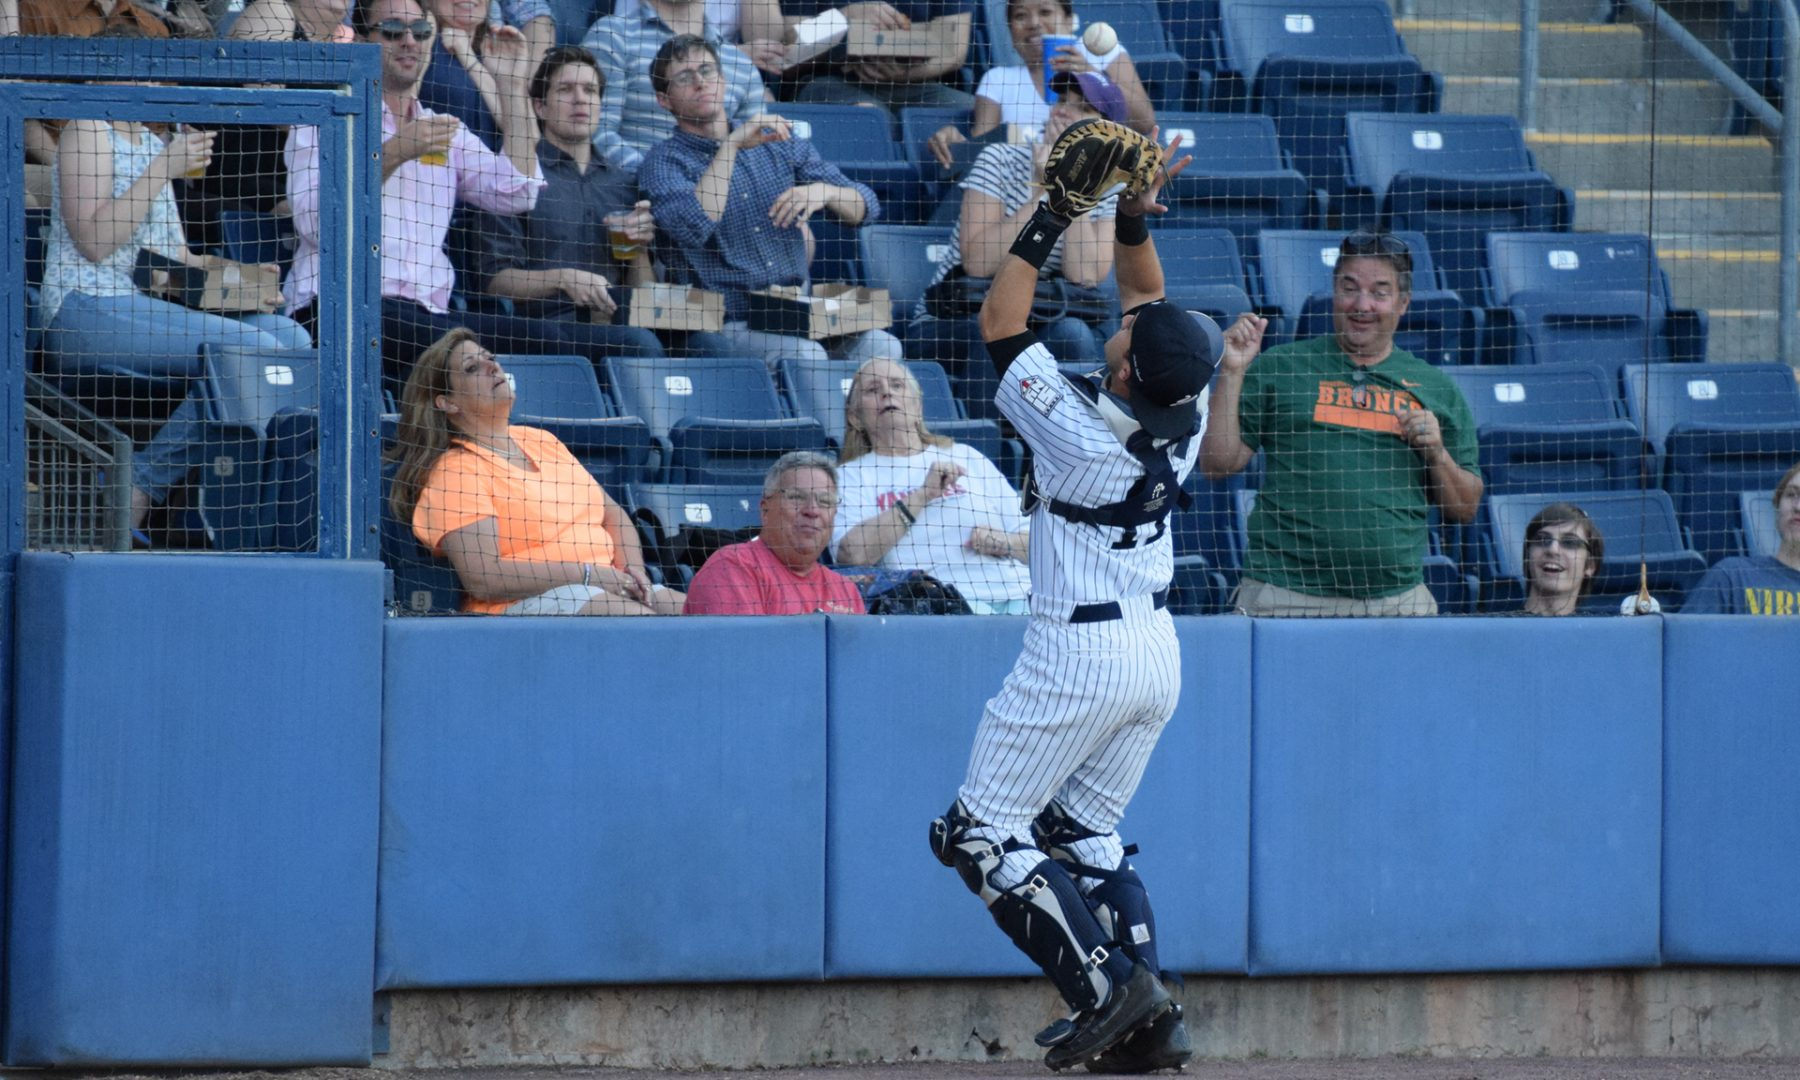 Staten Island Yankees catcher Luis Torrens catches a pop up behind the plate, just in front of the netting. (Robert M. Pimpsner)